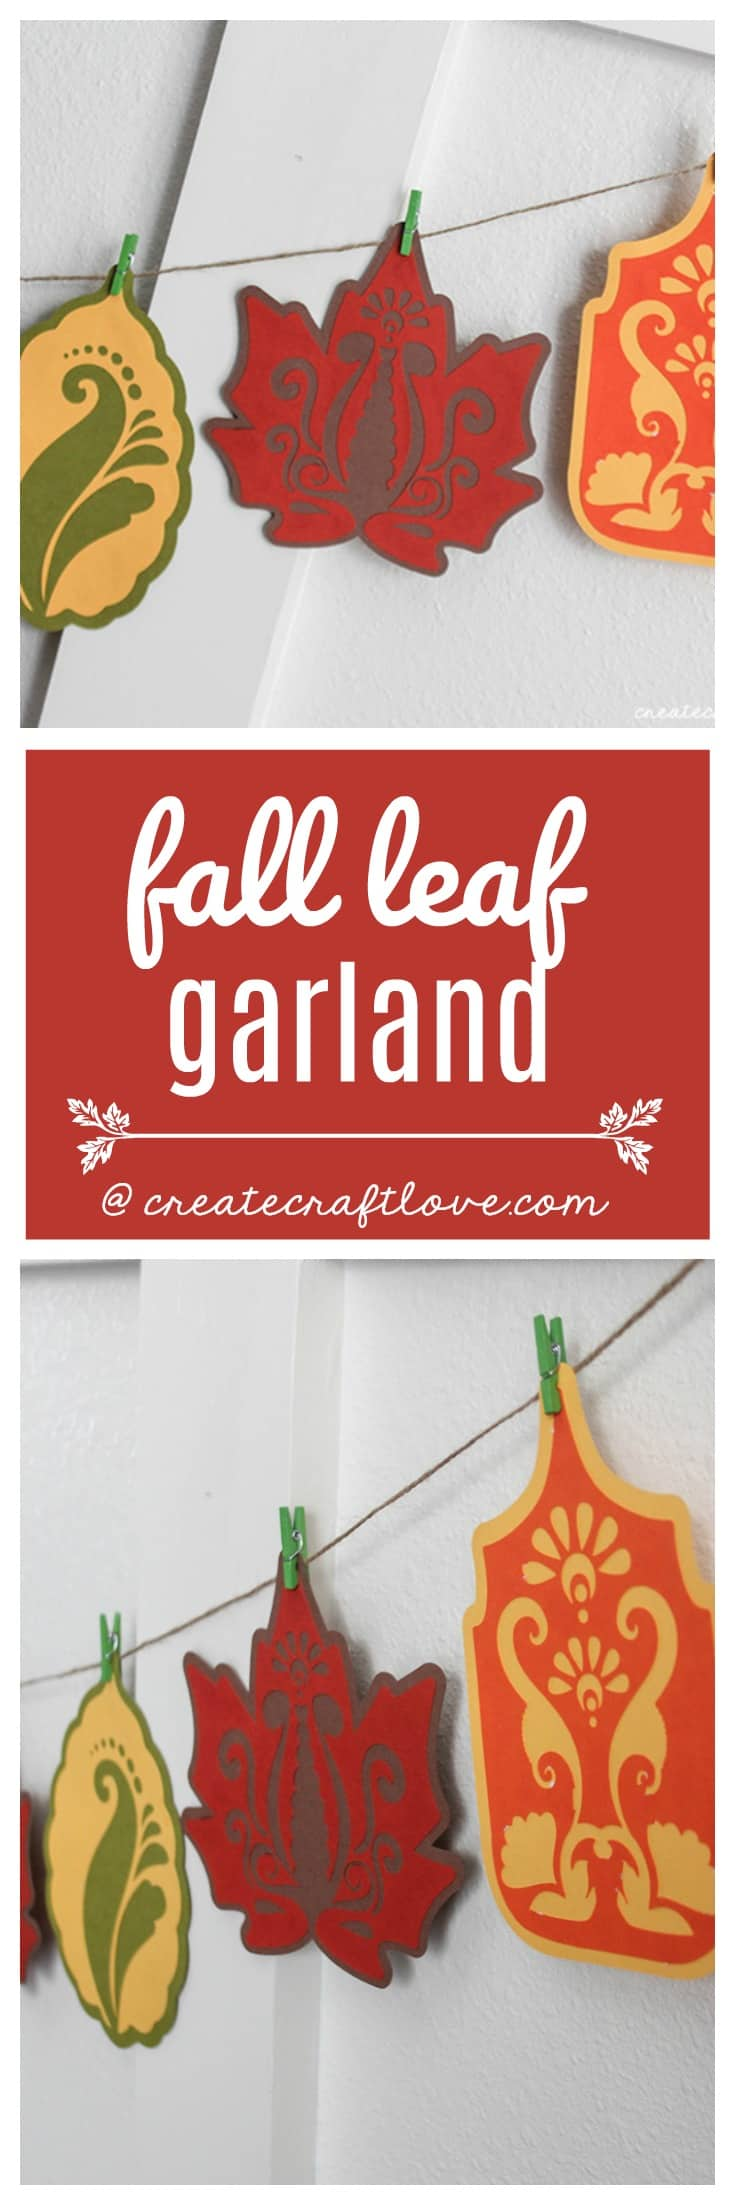 This Fall Leaf Garland is a great way to add some DIY to your fall decor!